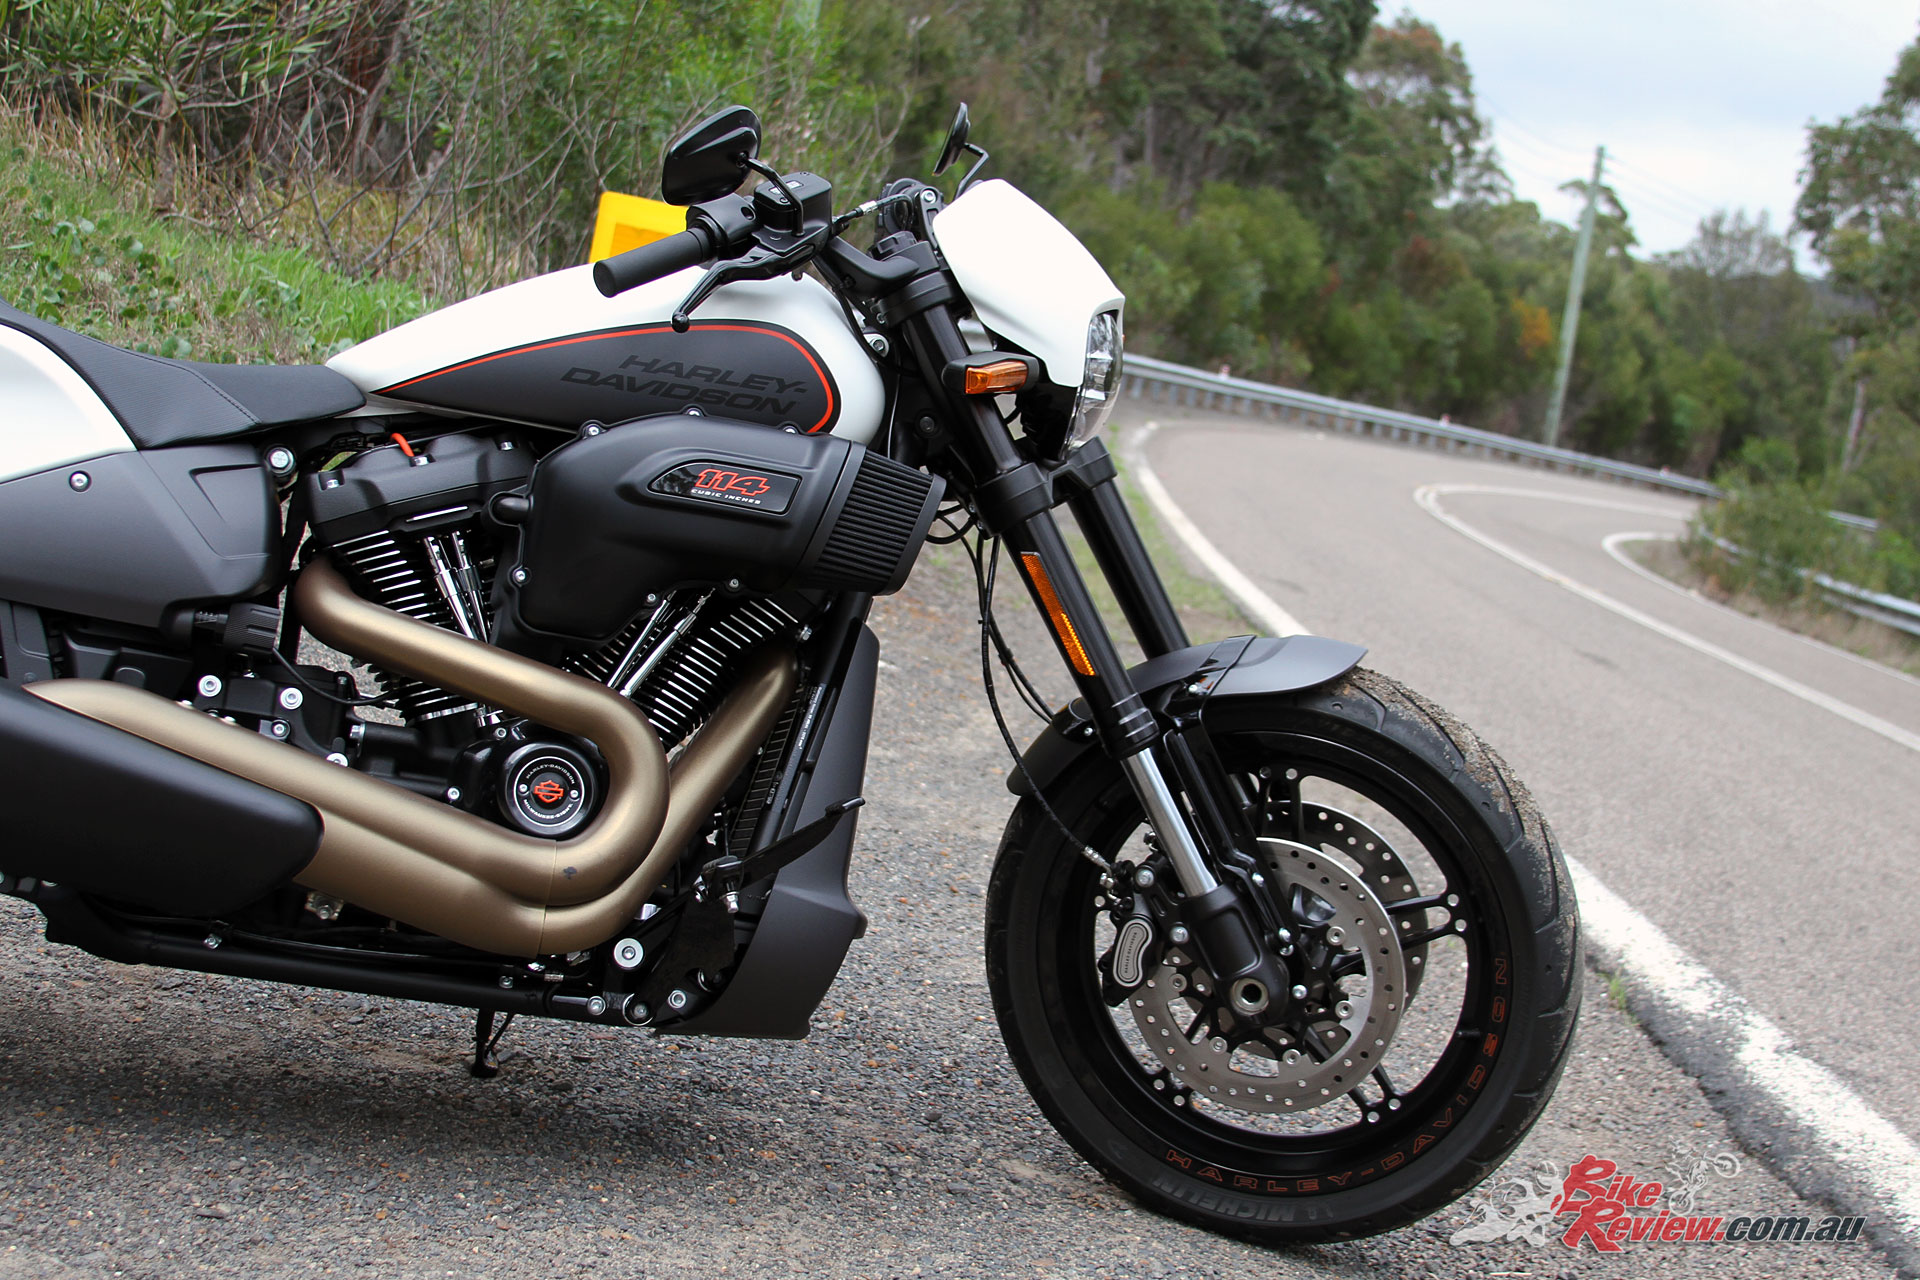 2019 Harley Davidson Fxdr 114 First Ride Review: Review: 2019 Harley-Davidson FXDR 114